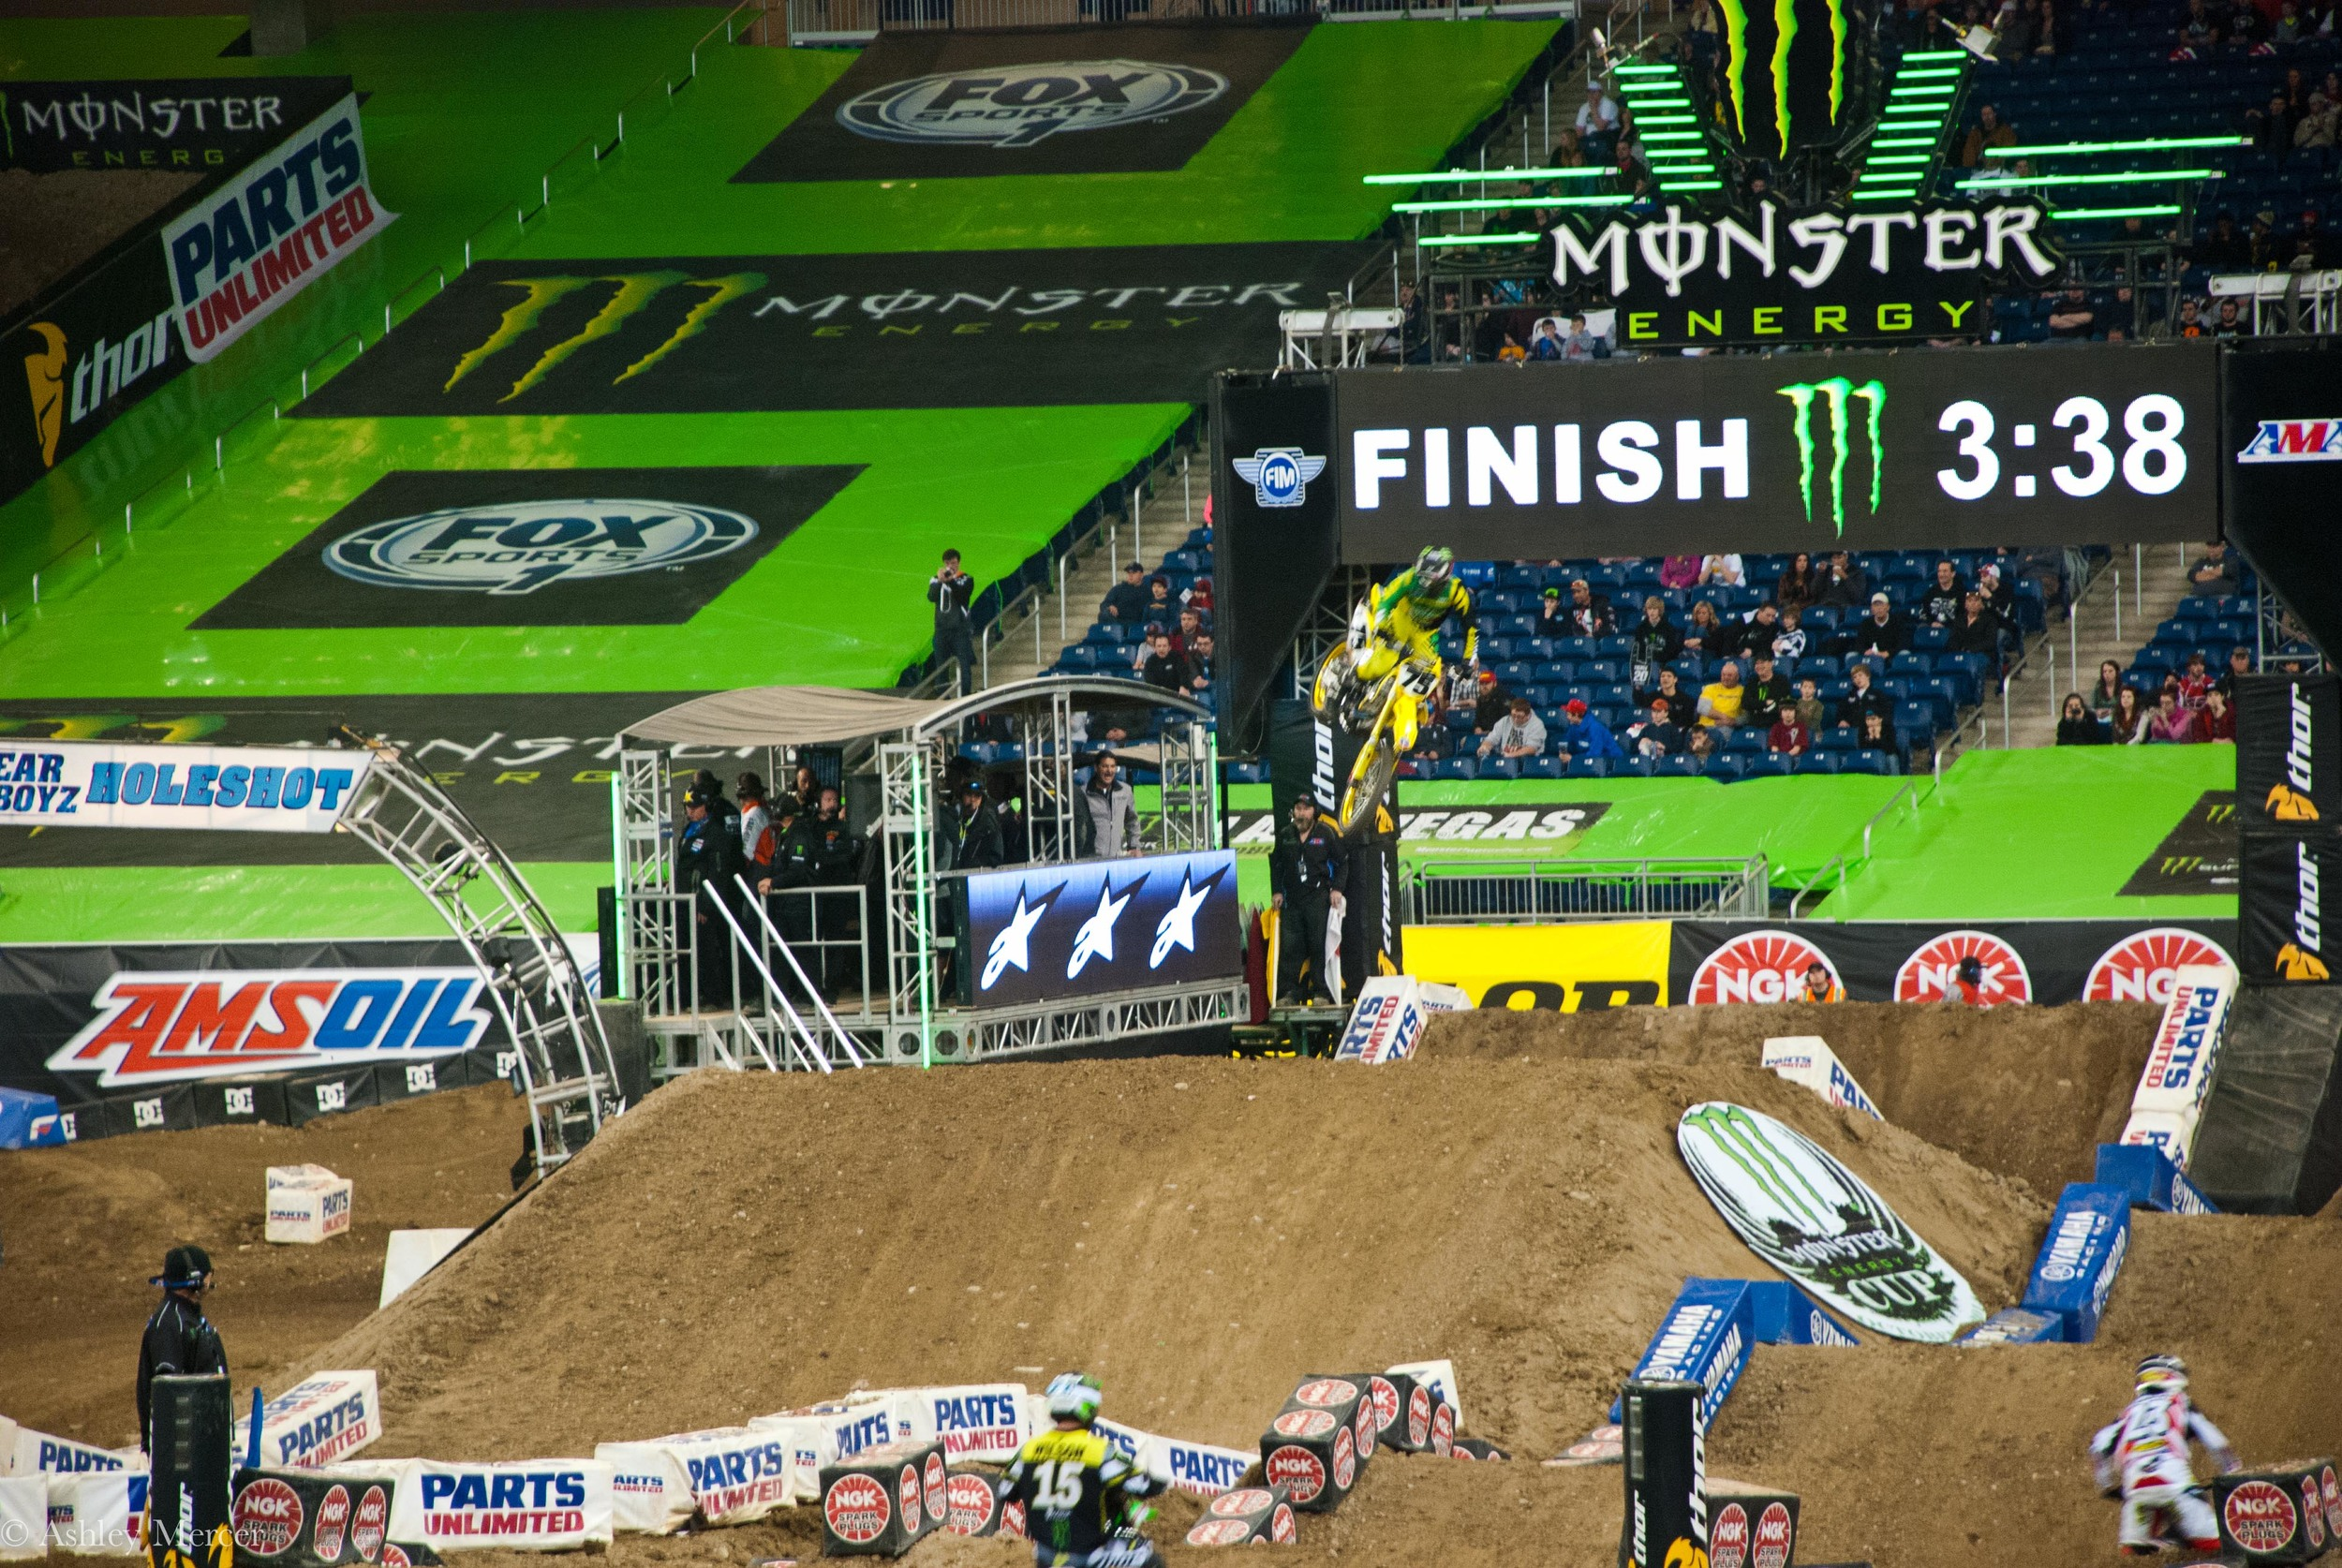 Supercross 2014 Detroit-4.jpg